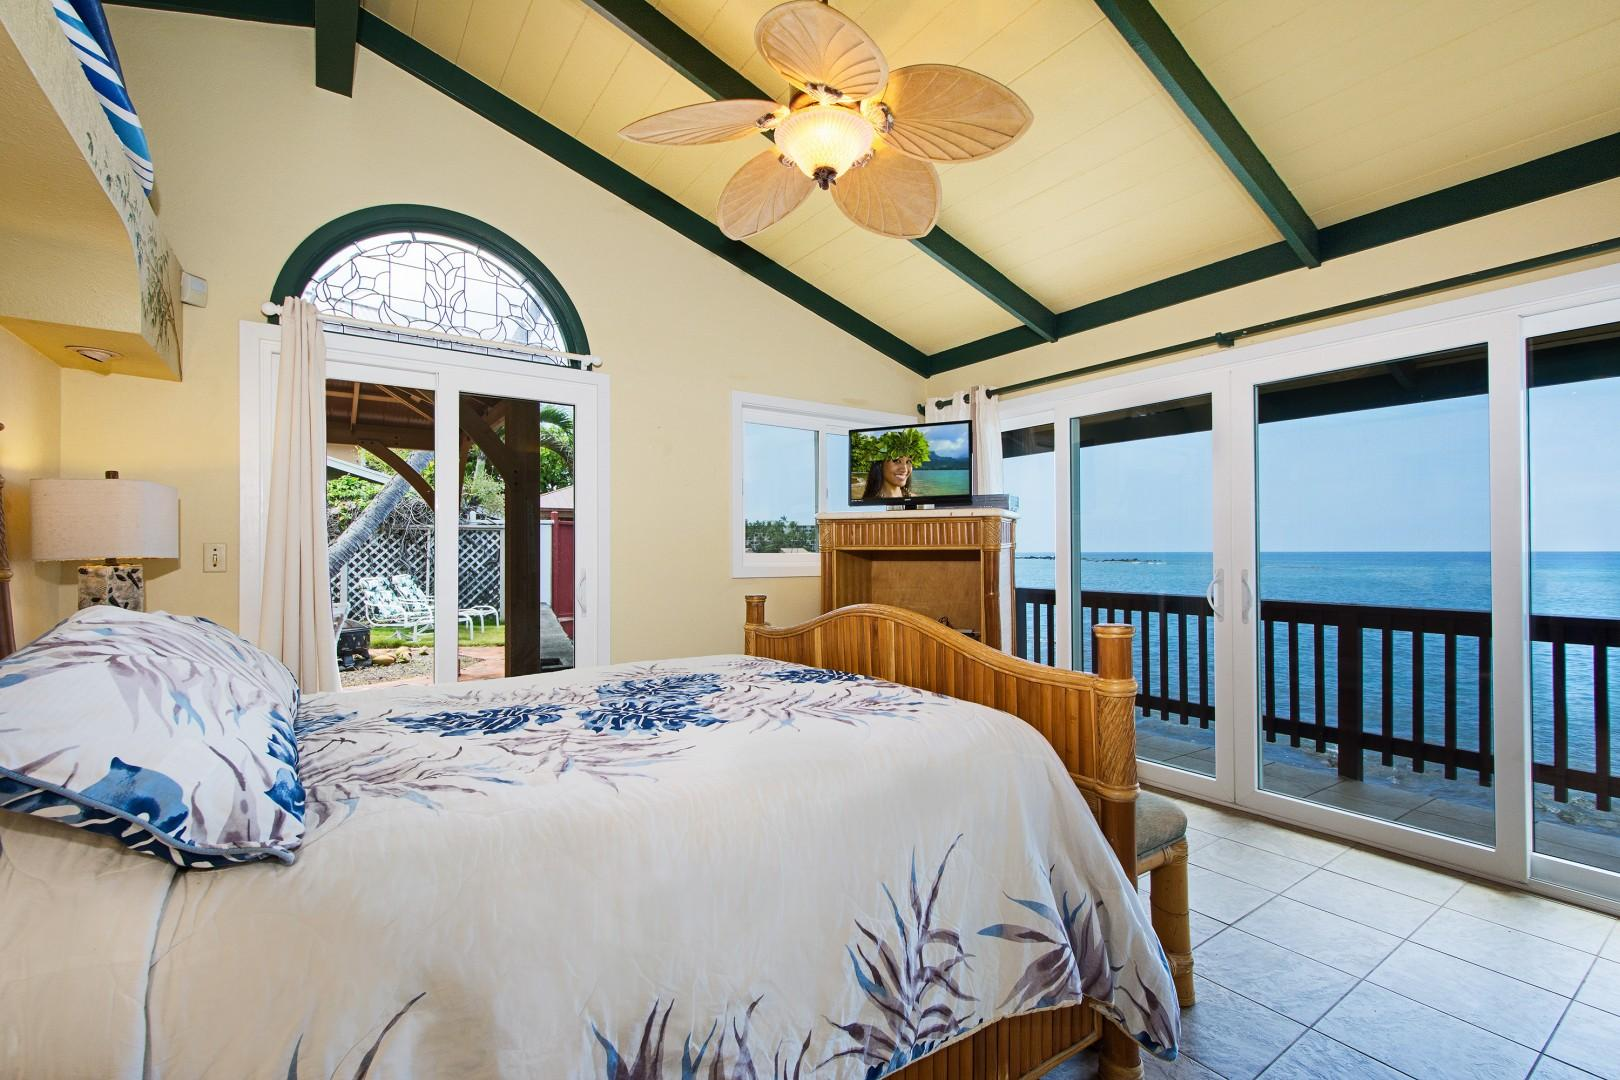 King sized bed in the bedroom with gorgeous Ocean views!